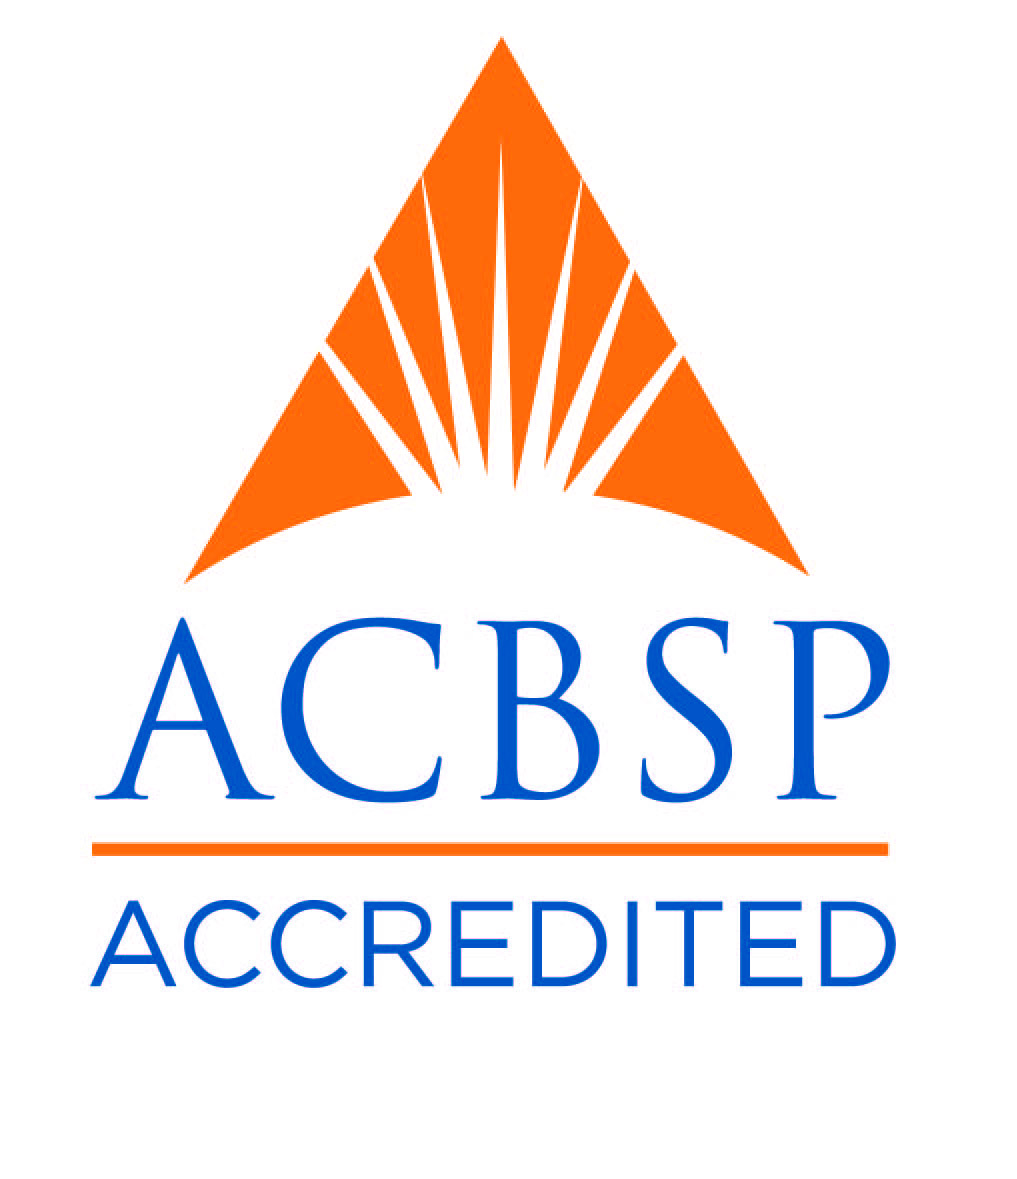 LCC School of Business Programs are Accredited by the Accreditation Council for Business Schools and Programs (ACBSP)